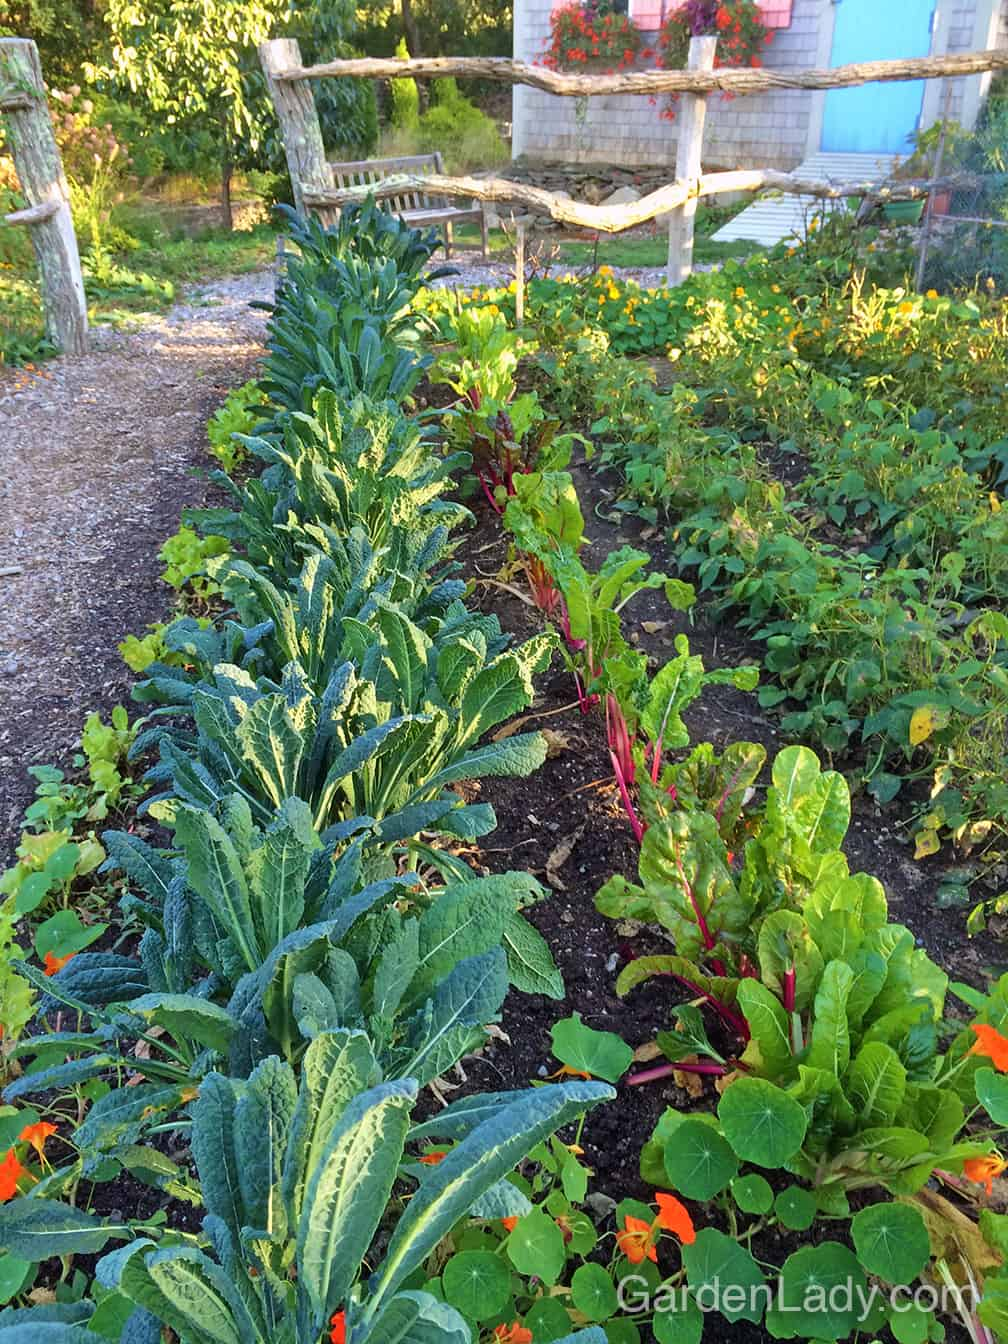 Don't settle for photos of lovely veggie gardens...create one for yourself! You will not only get the satisfaction of posting shots of your garden on Instagram, you'll get to eat what you've grown! #BestTastingFoodOnEarth